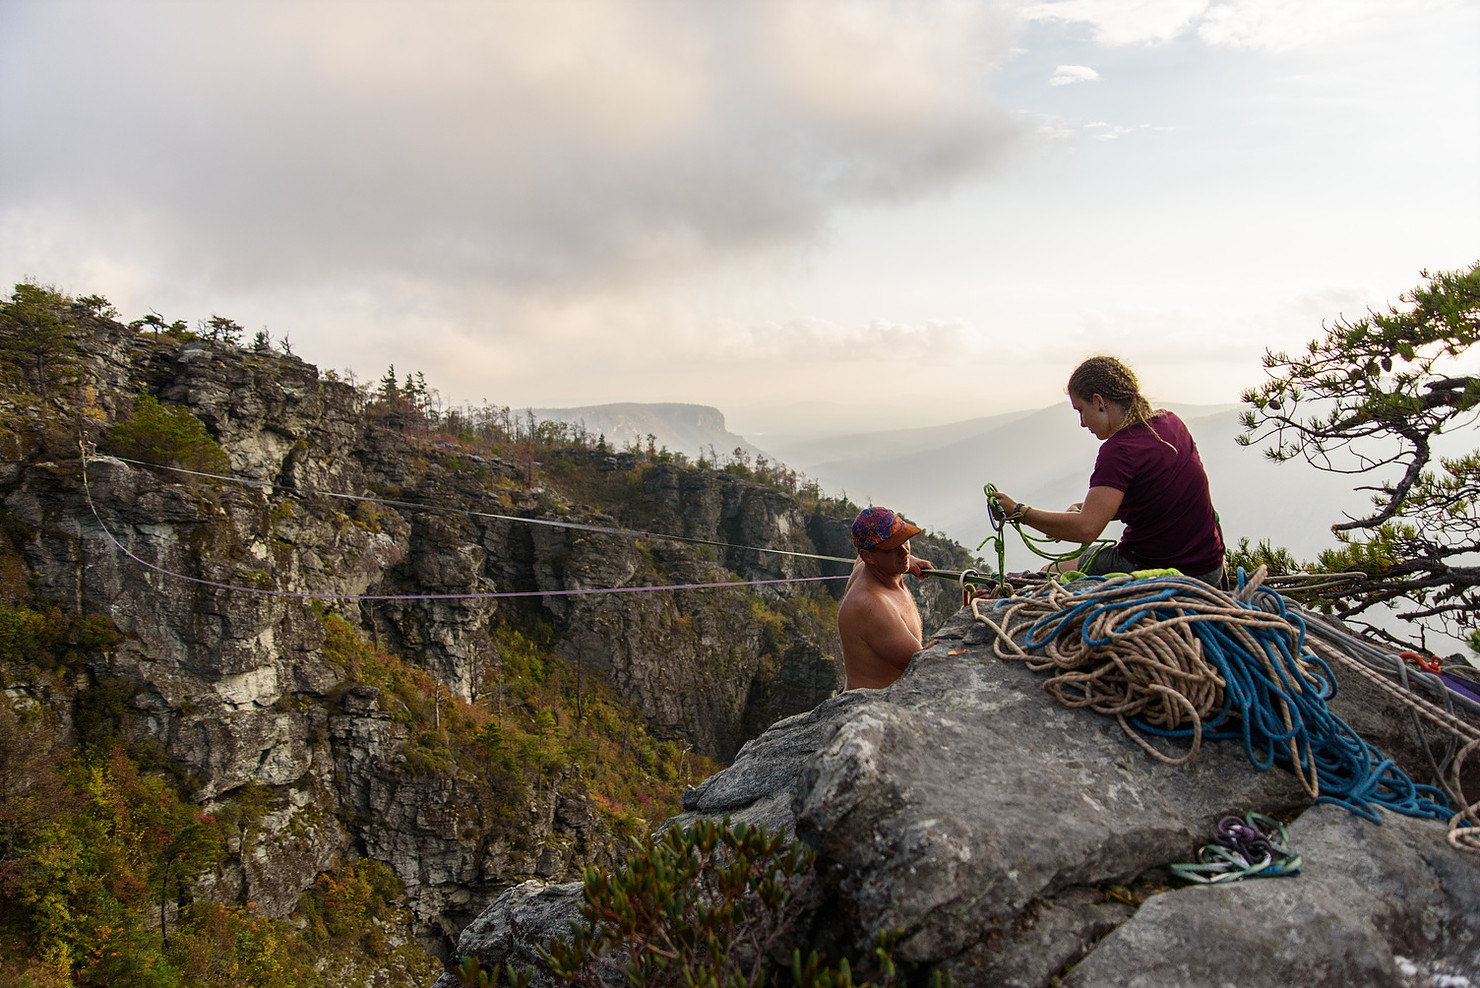 A local group called the South East Slackliners were having a gathering in the gorge last October. They were all nice enough to let me hang out with them and snap some images over the course of the week as they set up their rigs throughout the gorge.